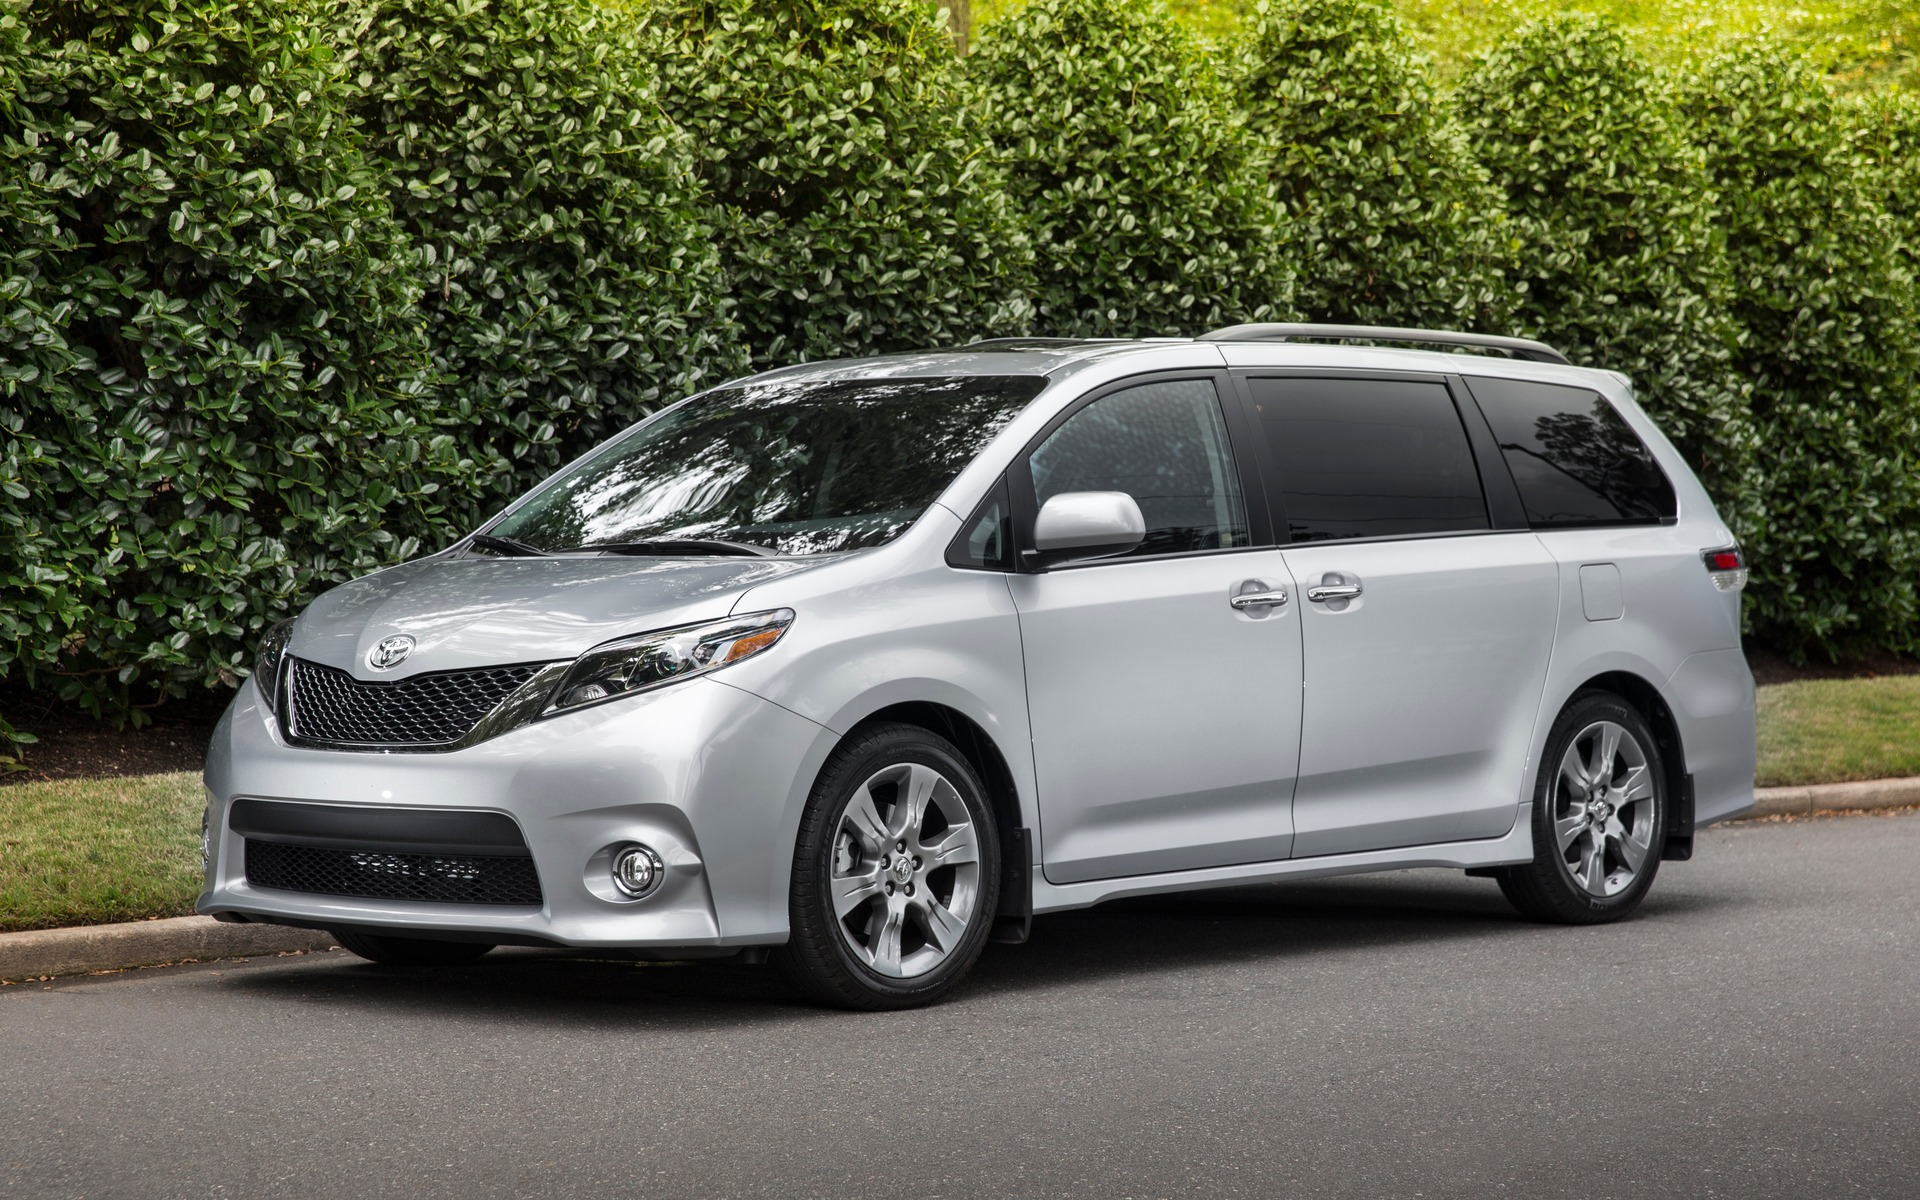 2017 toyota sienna family first the car guide. Black Bedroom Furniture Sets. Home Design Ideas